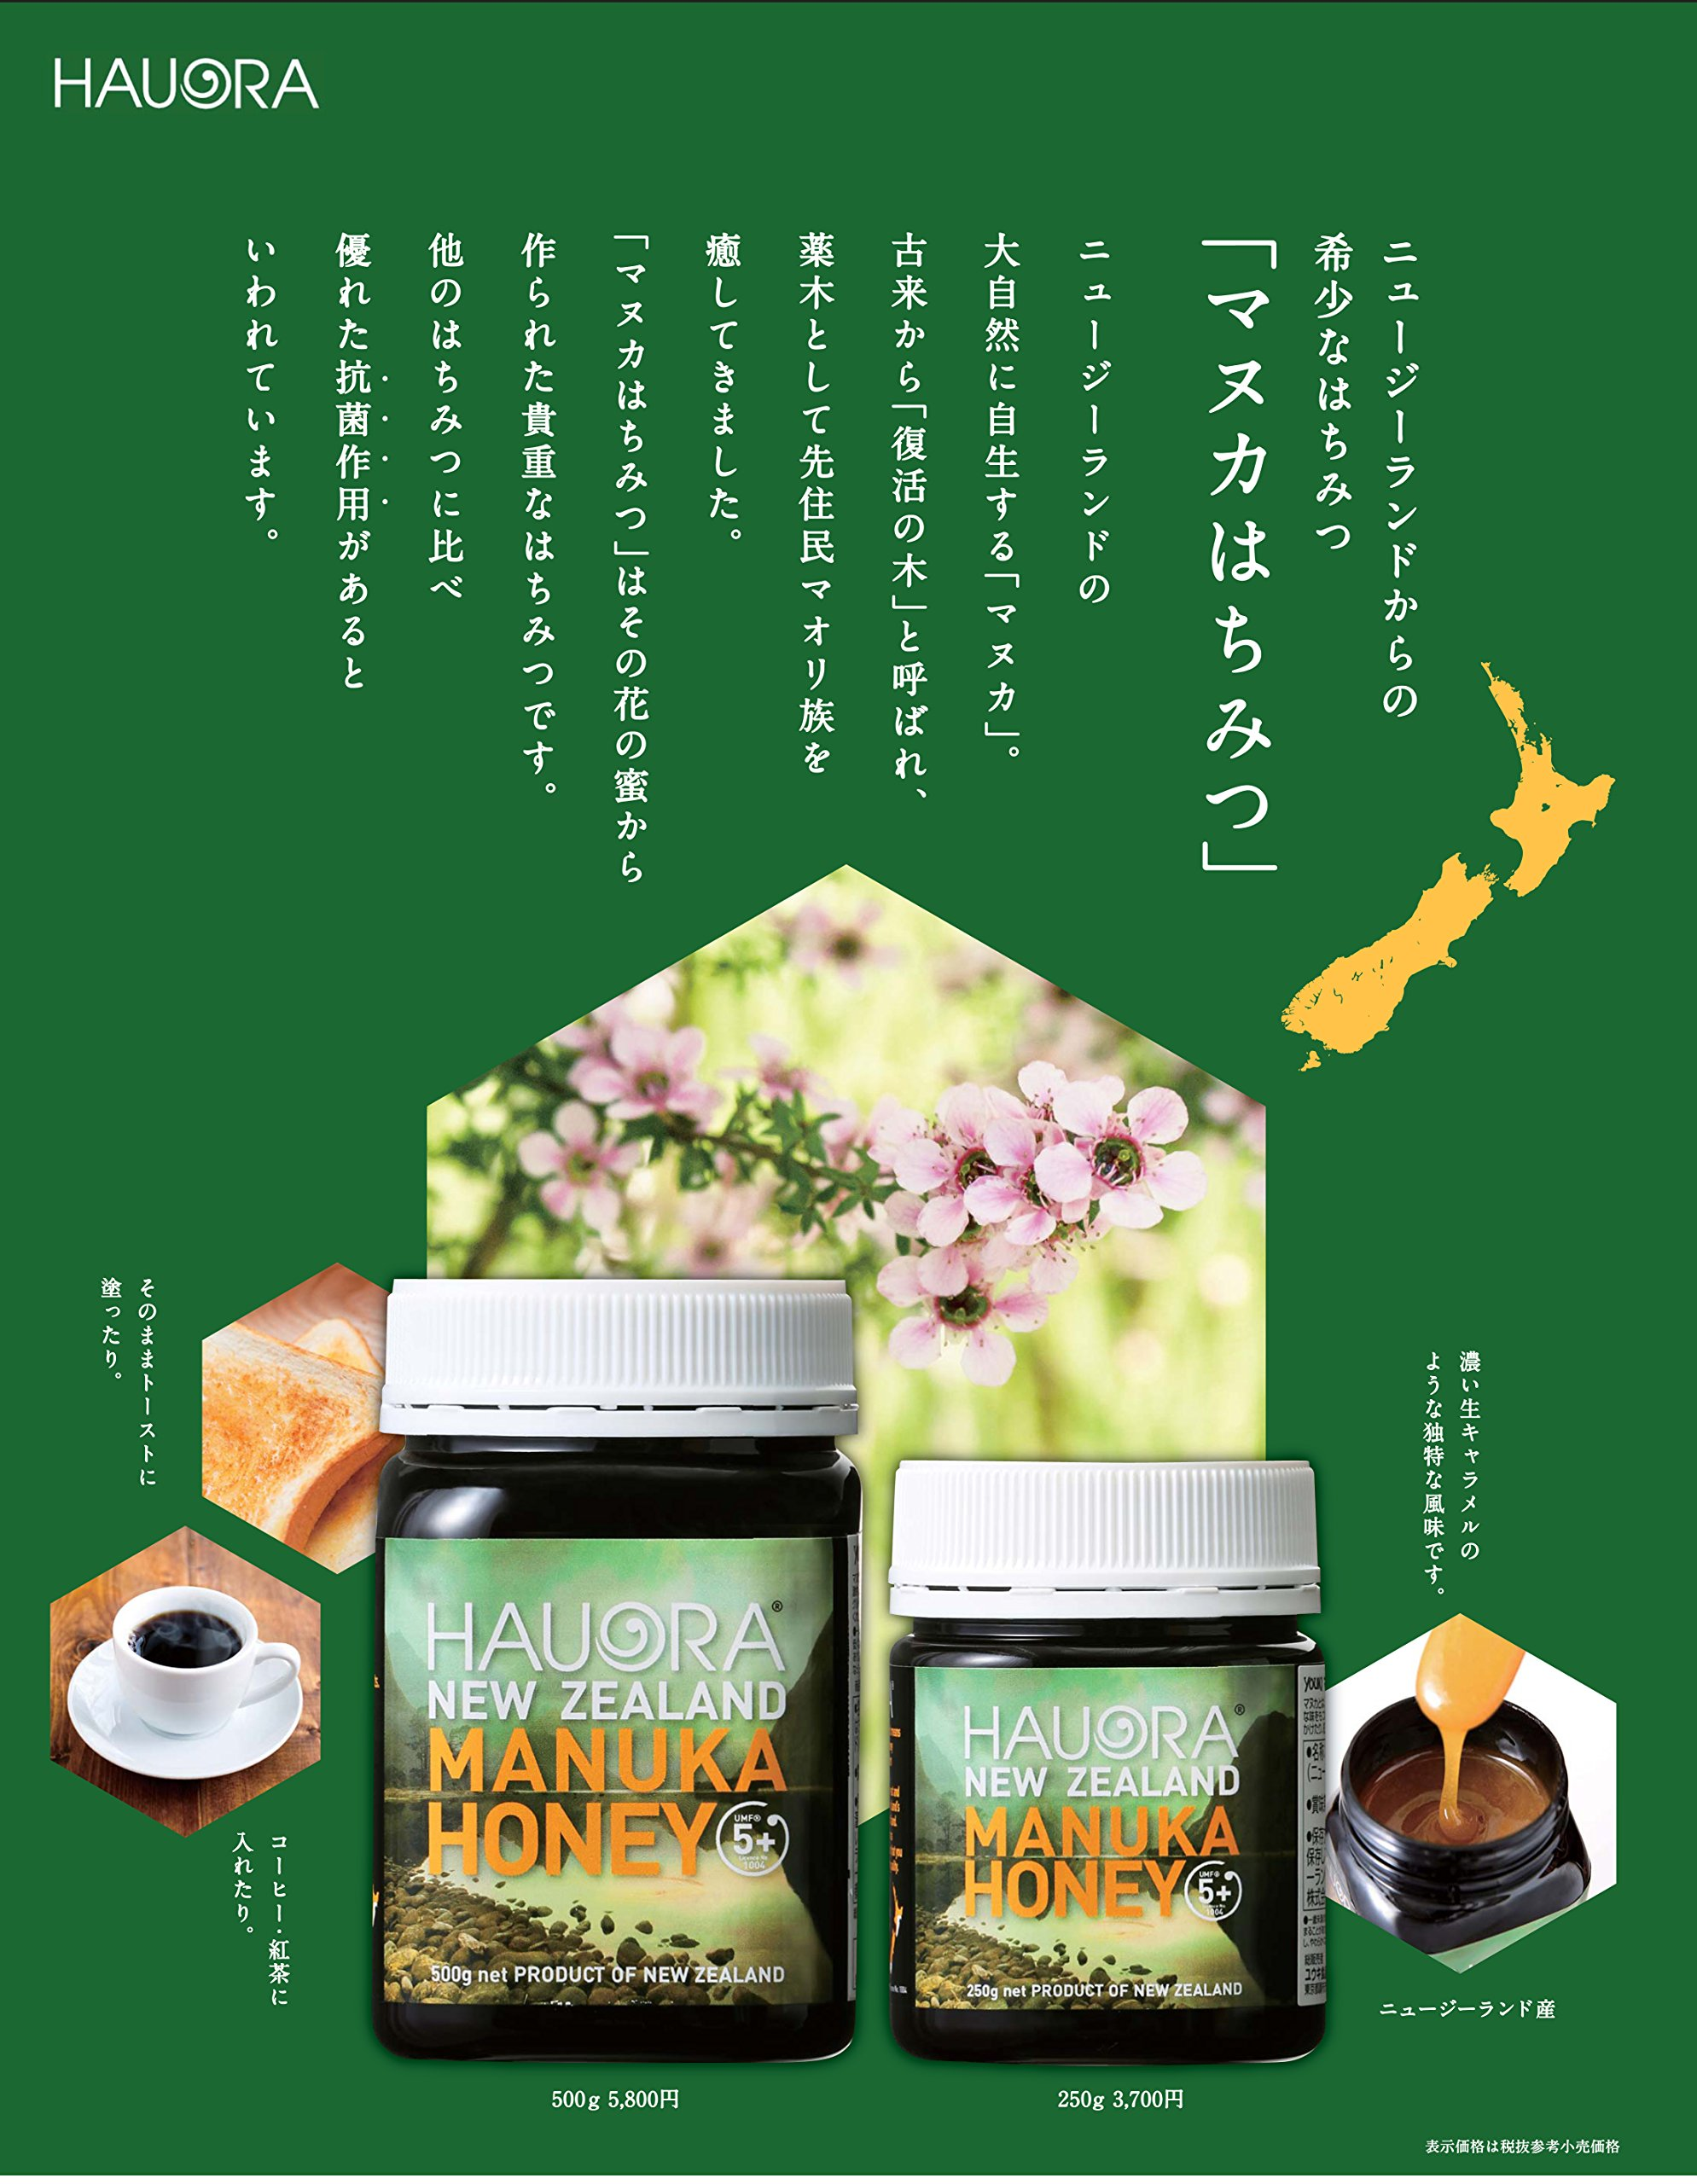 Yuki food manuka honey UMF5 + 500g by YuKi Ltd.